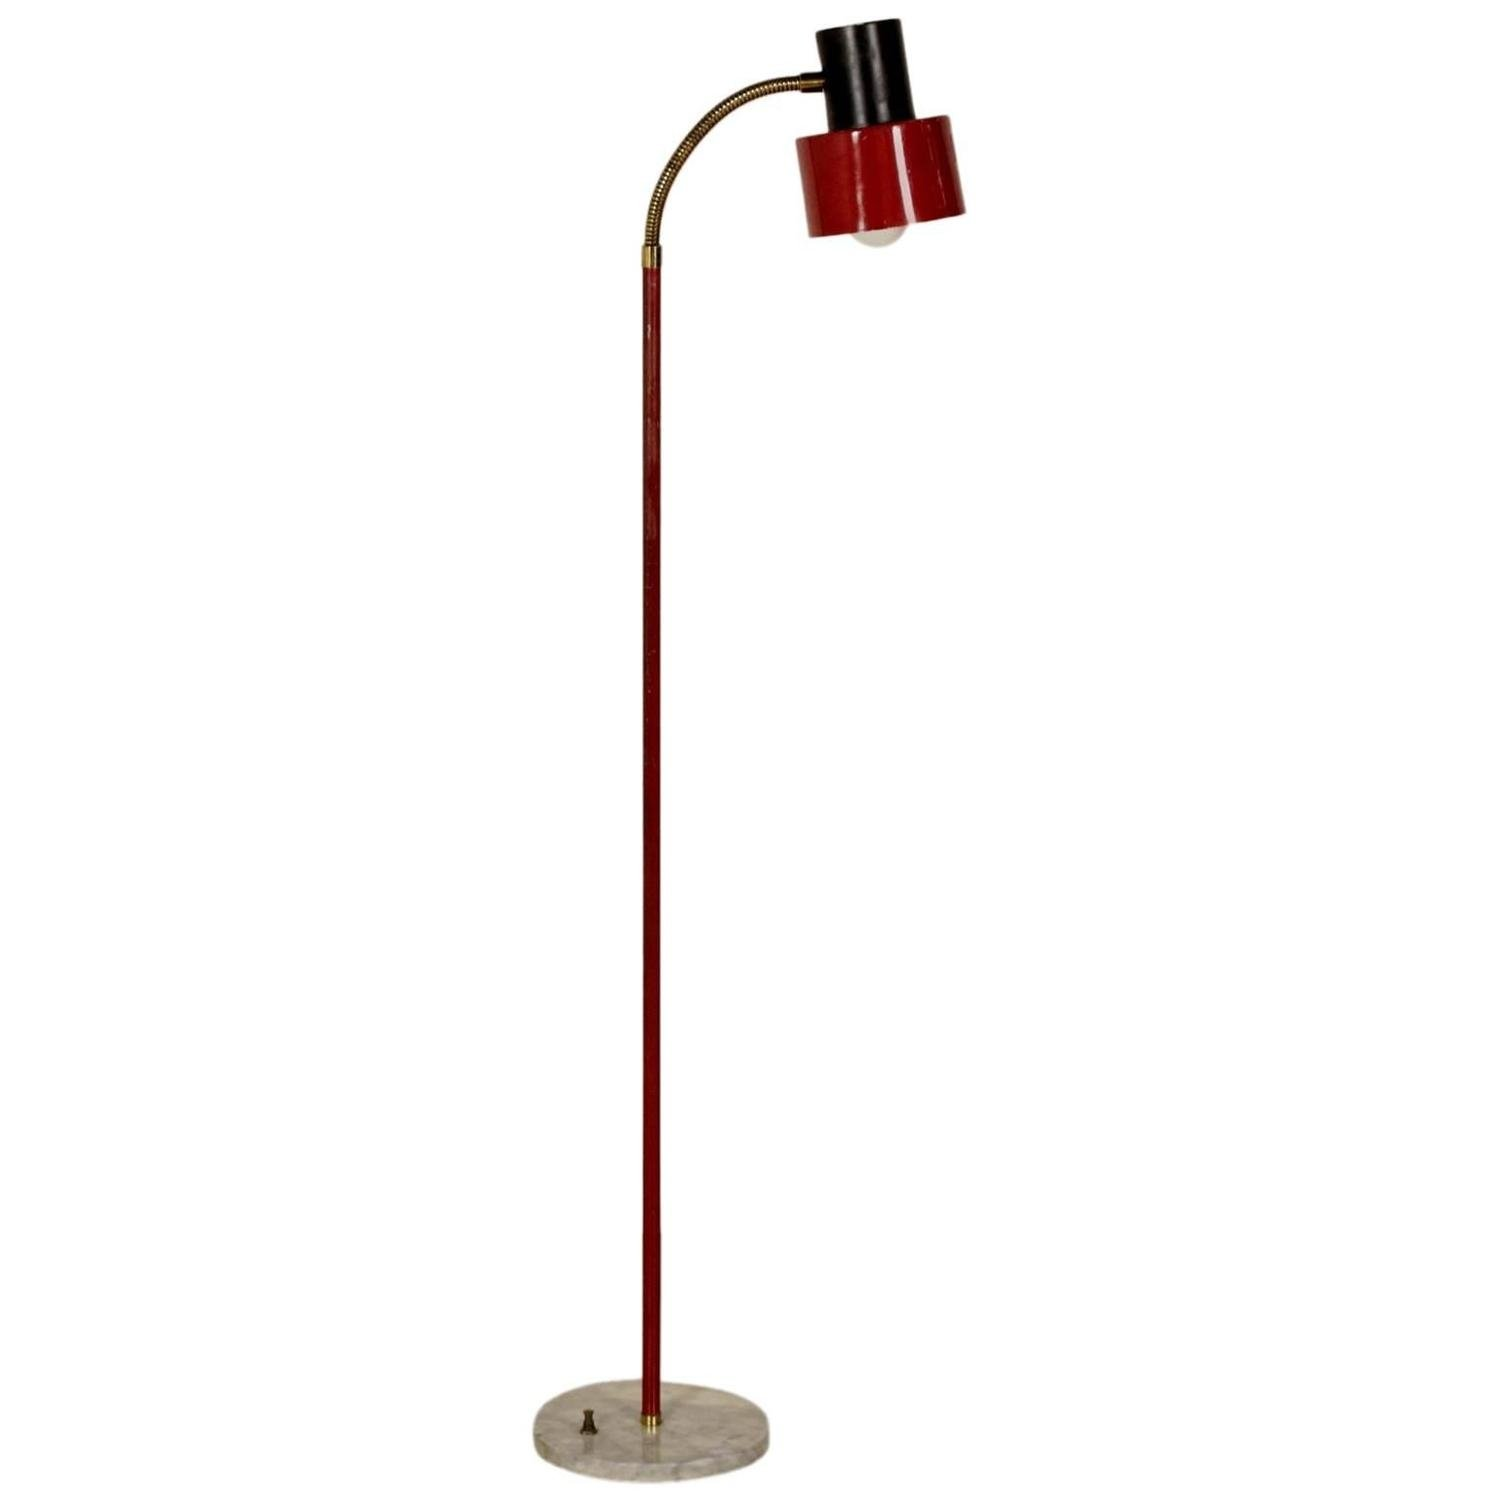 Vintage Floor Lamp From Italy 1950s 66023